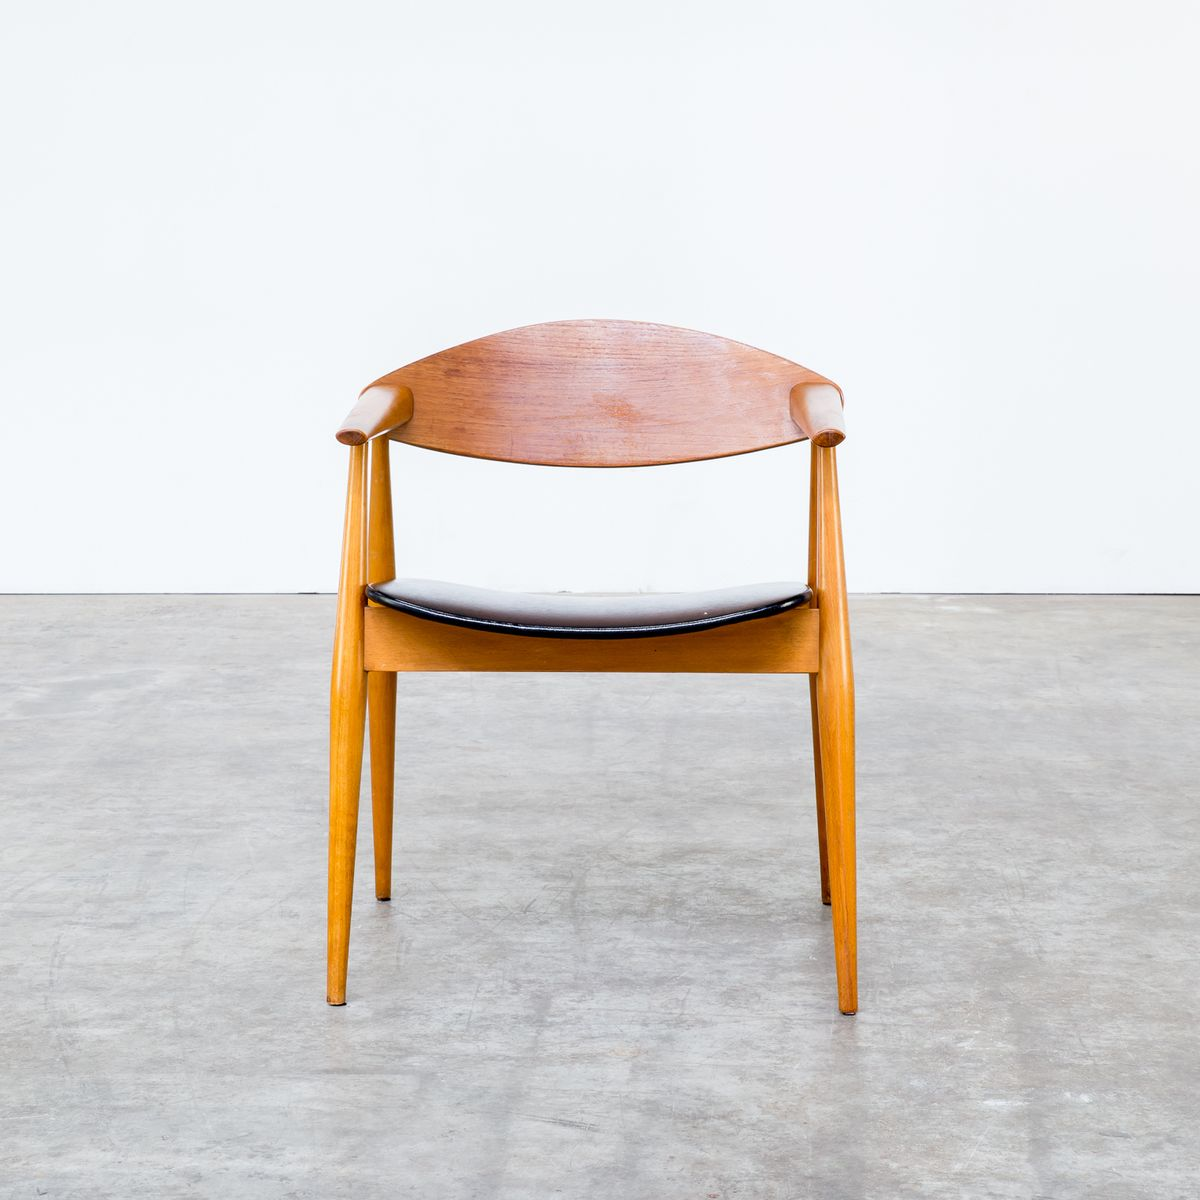 Scandinavian chair in teak plywood 1970s for sale at pamono - Scandinavian chair ...